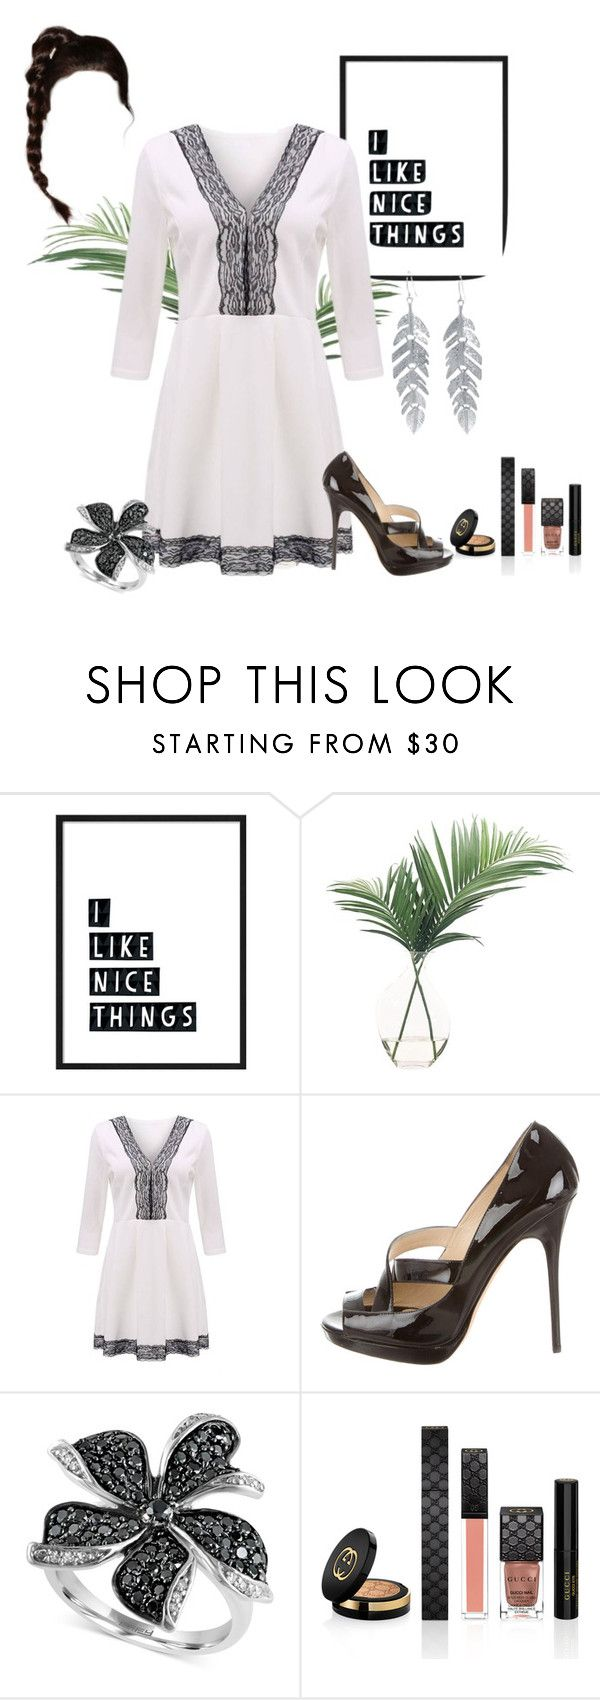 """Untitled #3089"" by empathetic ❤ liked on Polyvore featuring NDI, Jimmy Choo, Effy Jewelry, Gucci and Belk Silverworks"